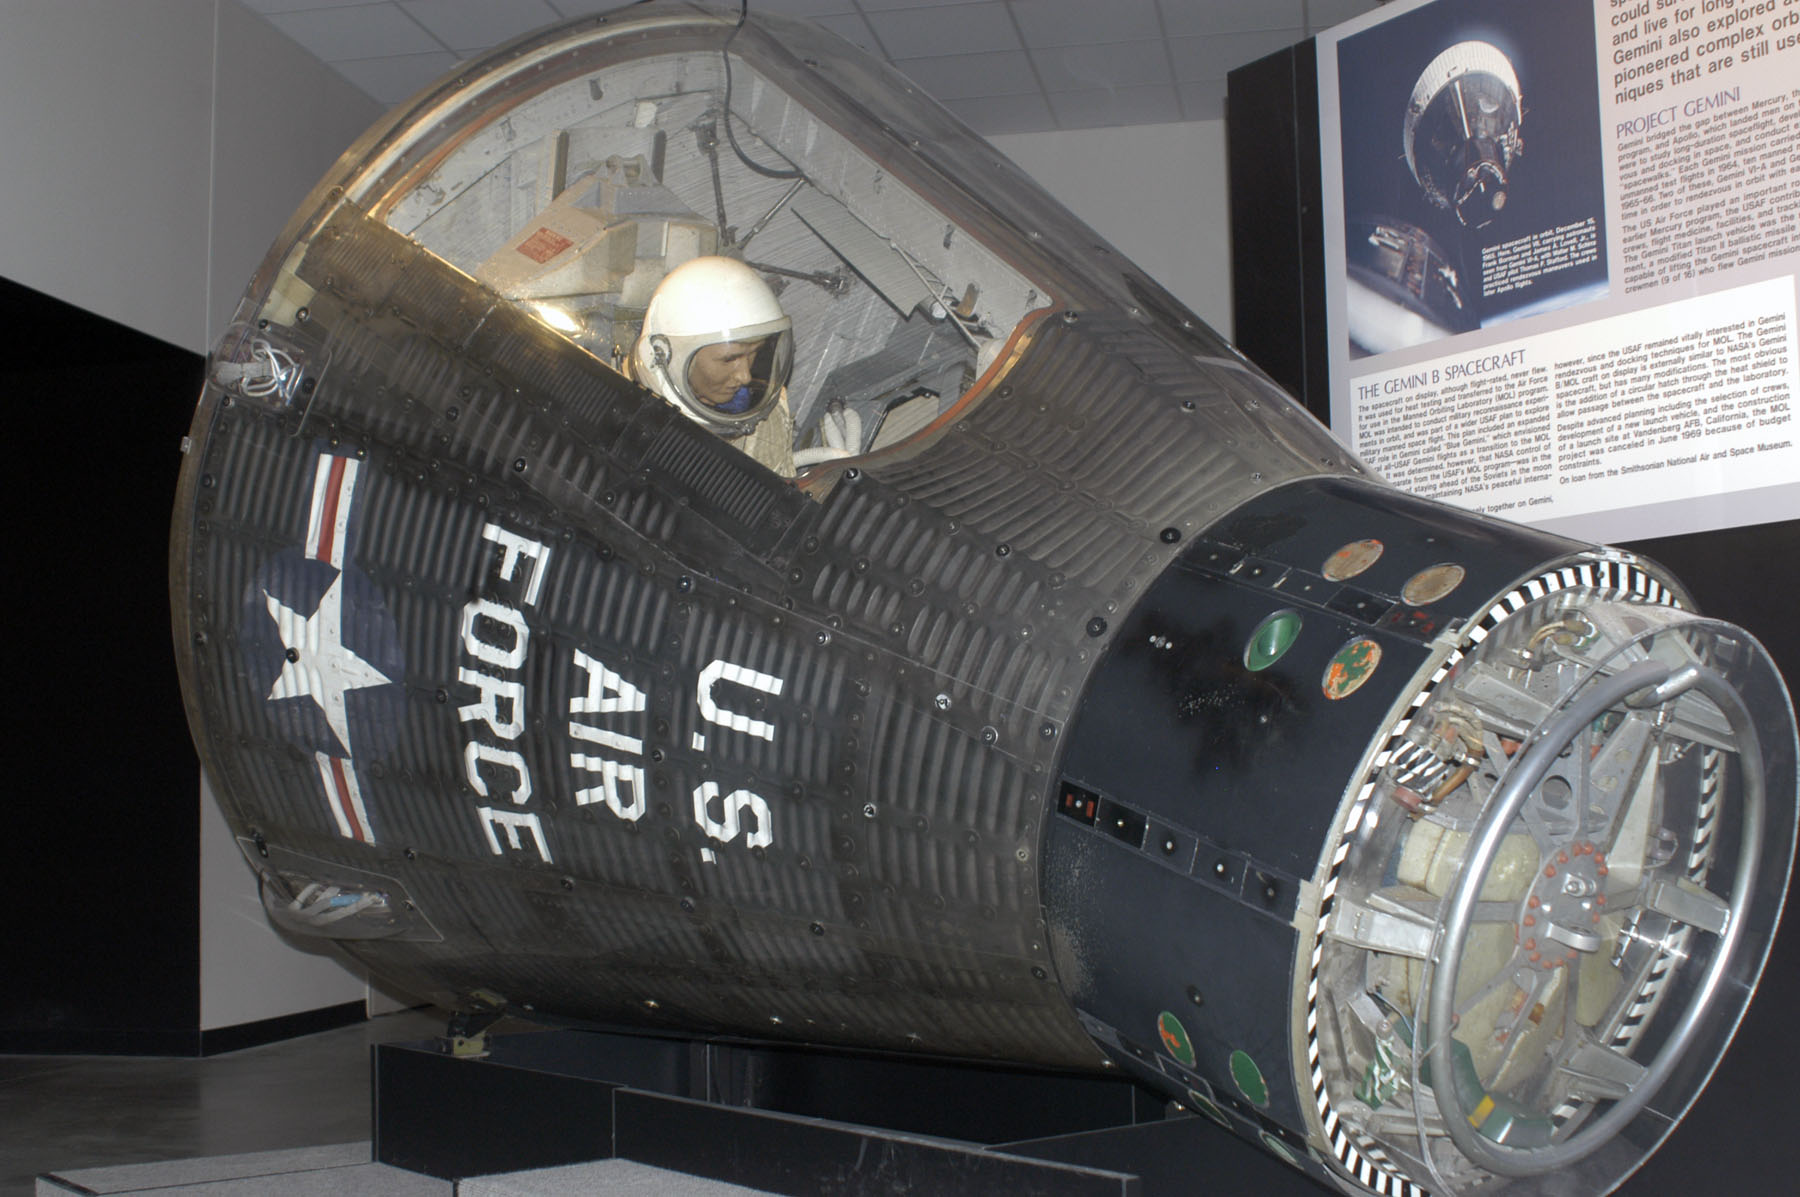 File:Gemini-B.jpg - Wikimedia Commons